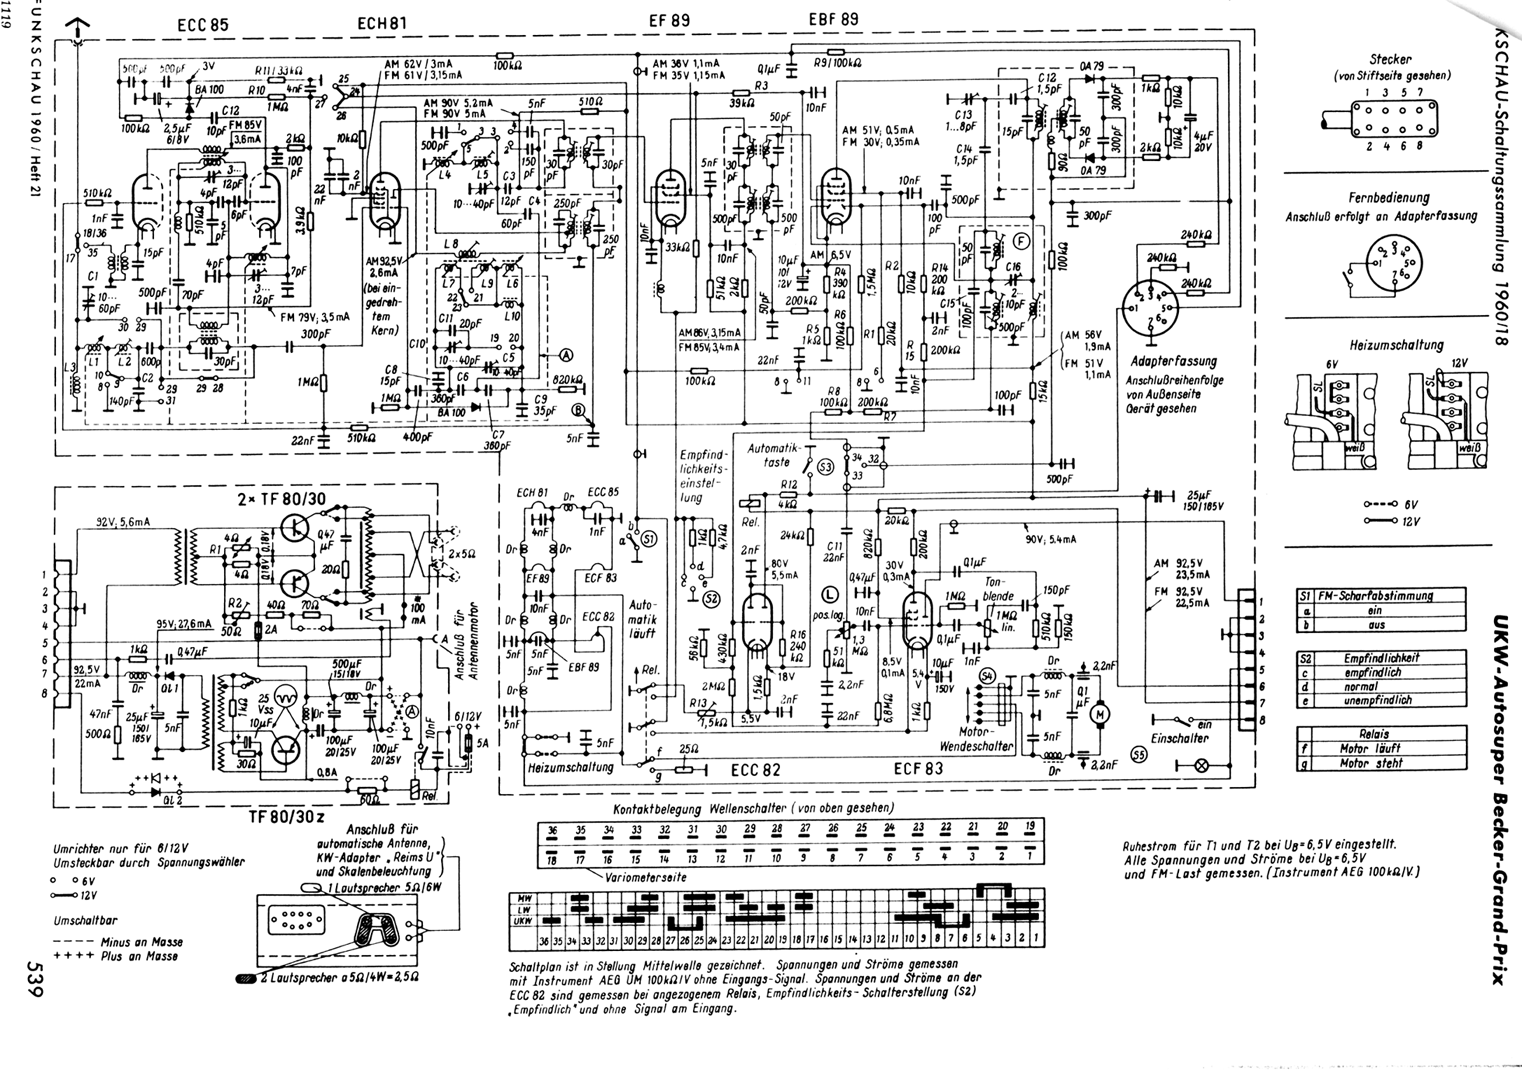 Becker Car Radio Wiring Diagram : Becker europa radio wiring diagram get free image